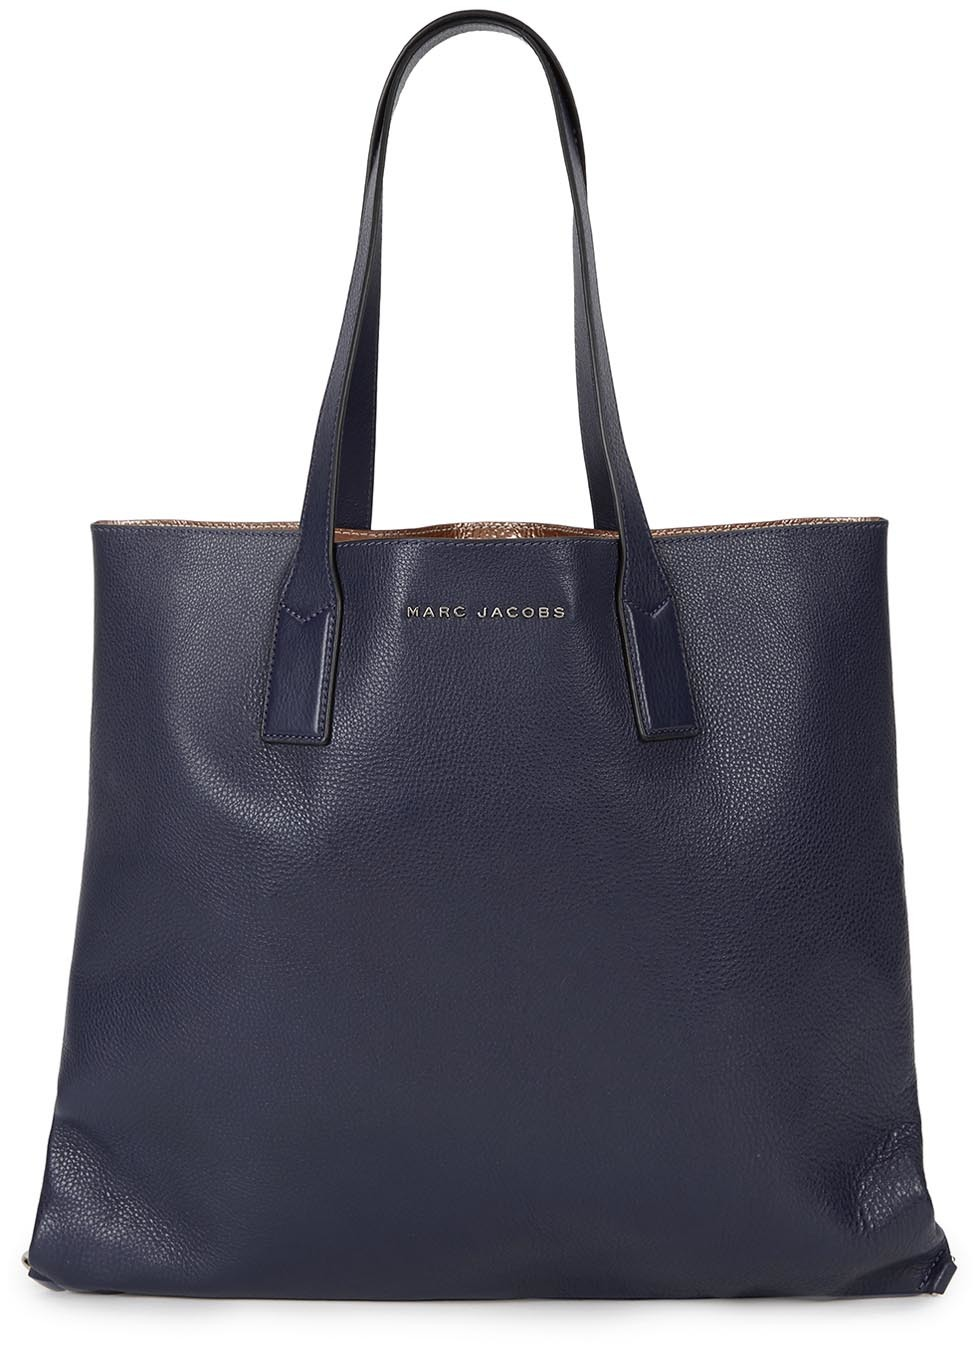 Wingman Navy Grained Leather Tote - predominant colour: navy; occasions: casual, creative work; type of pattern: standard; style: tote; length: handle; size: oversized; material: leather; pattern: plain; finish: plain; season: s/s 2016; wardrobe: investment